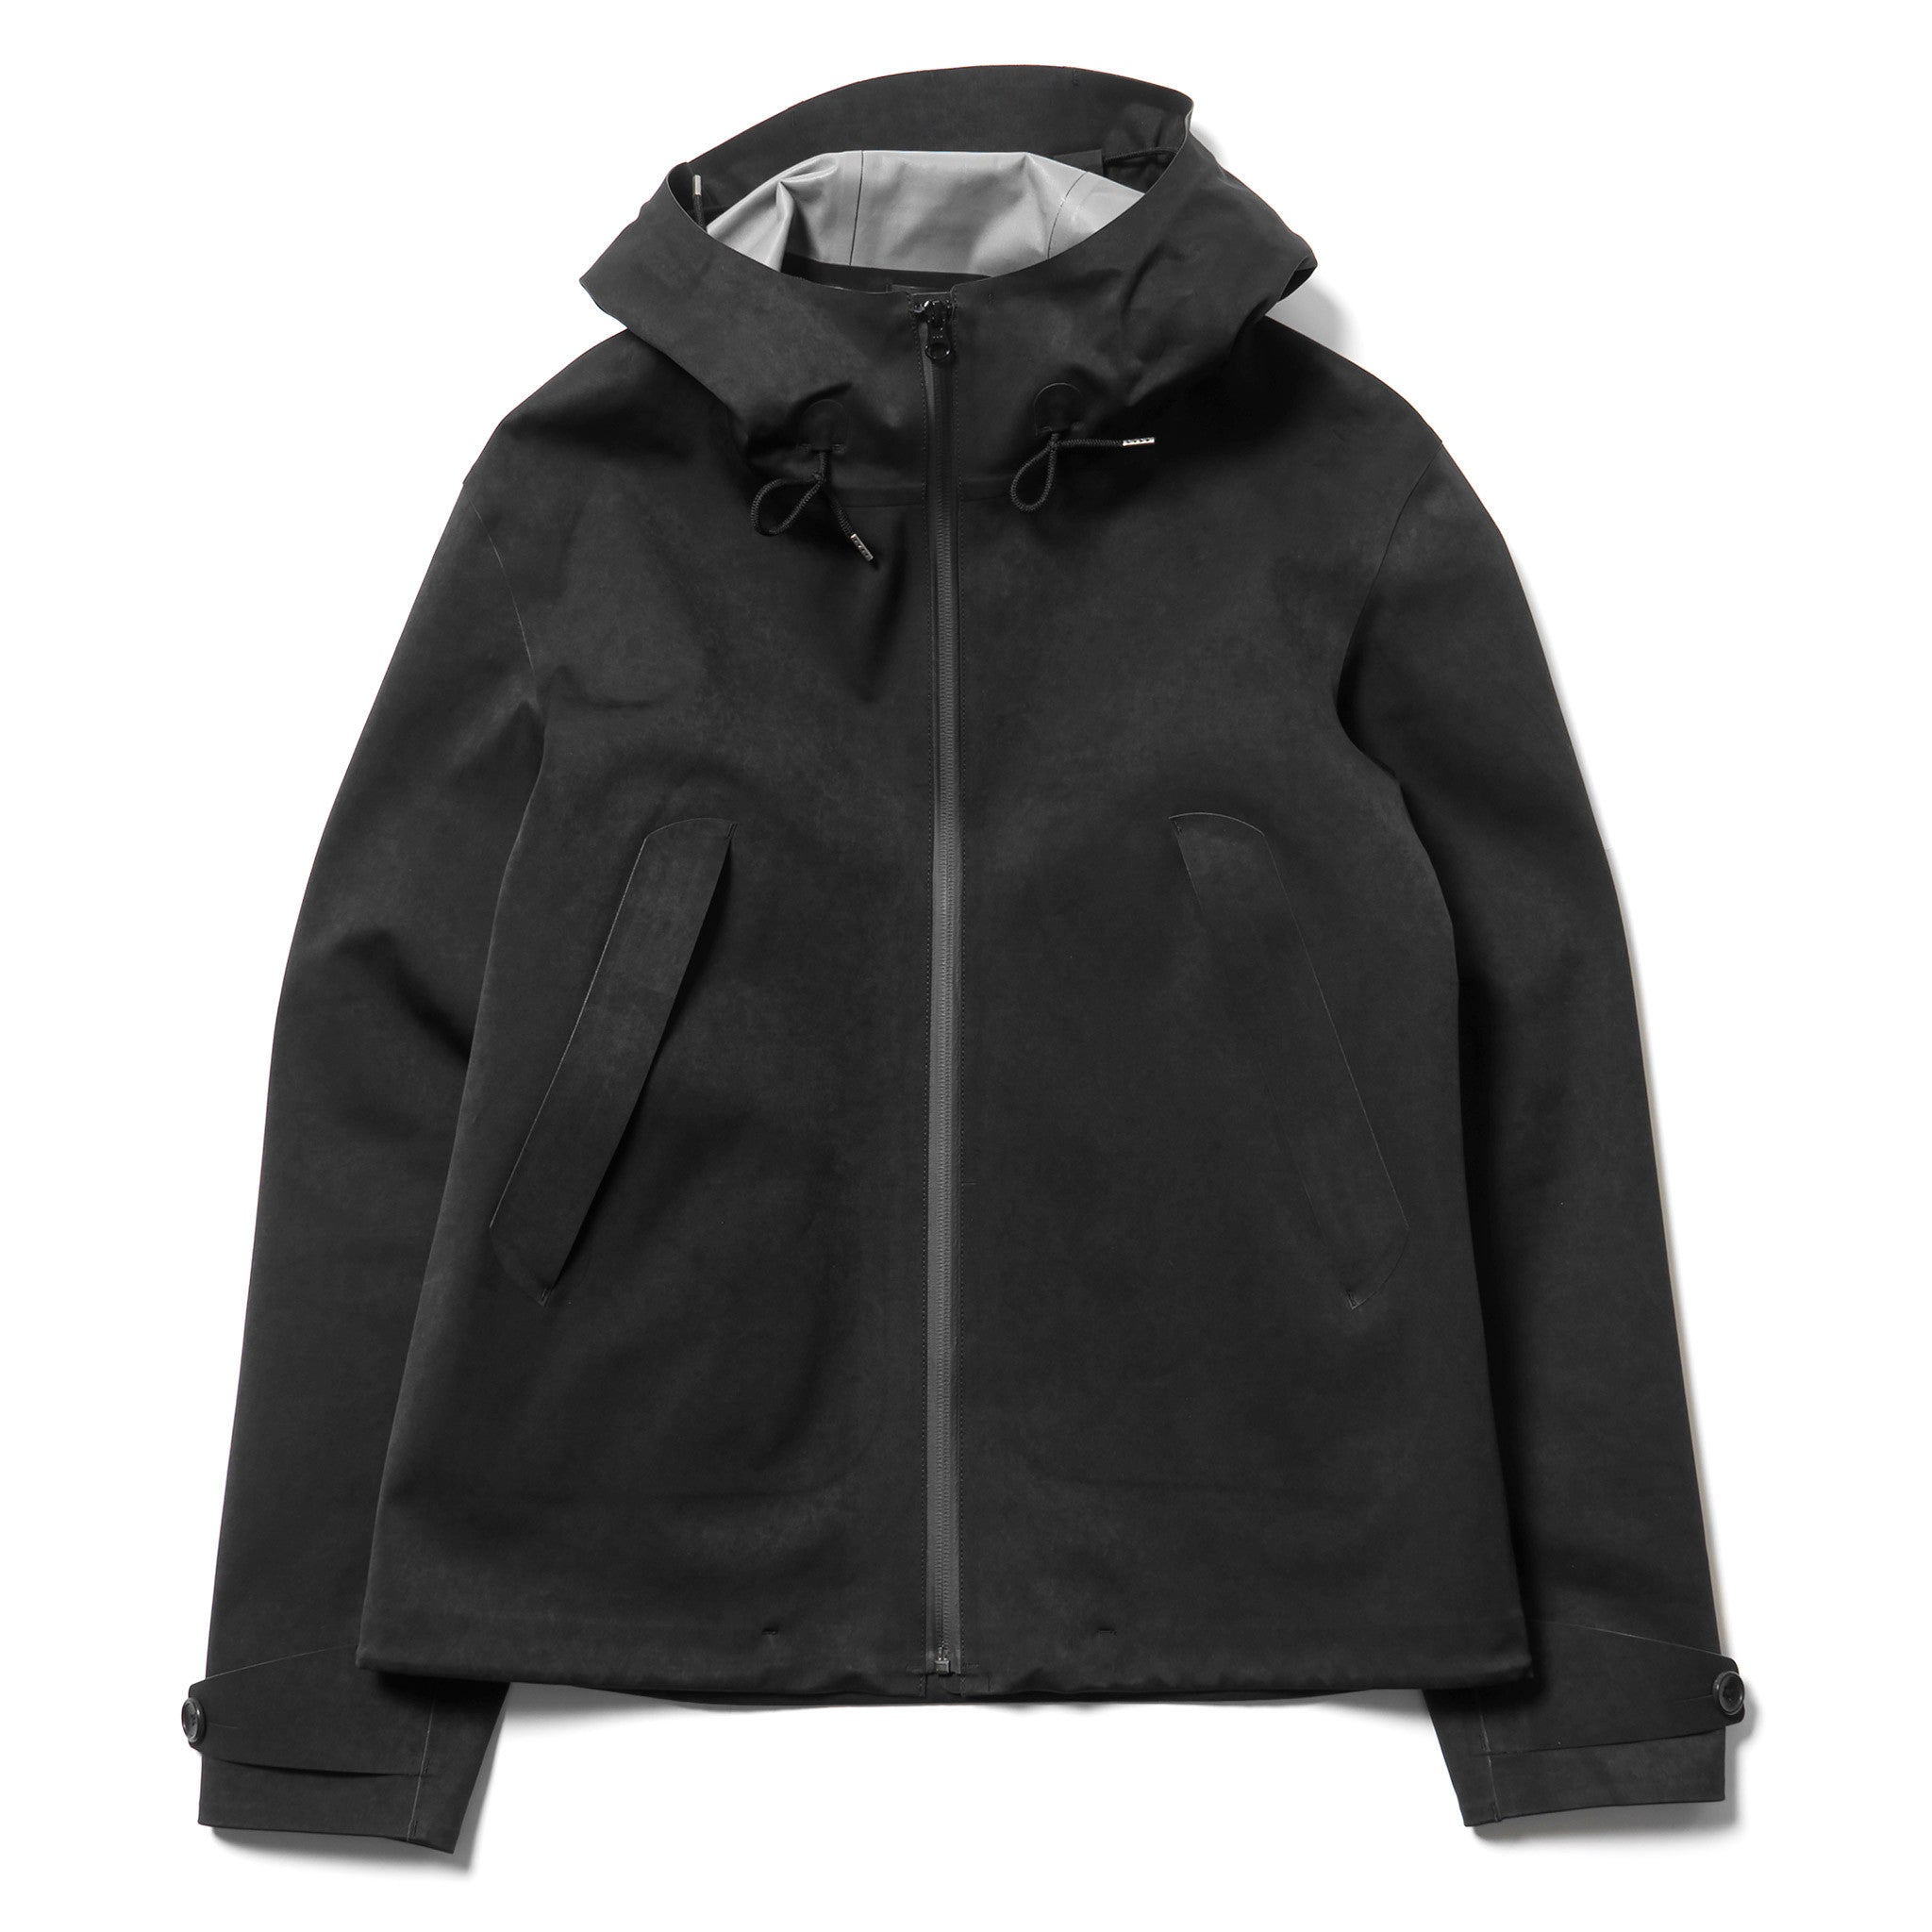 Ten-C-Anorak-3L-BLACK-1_2048x2048.jpg